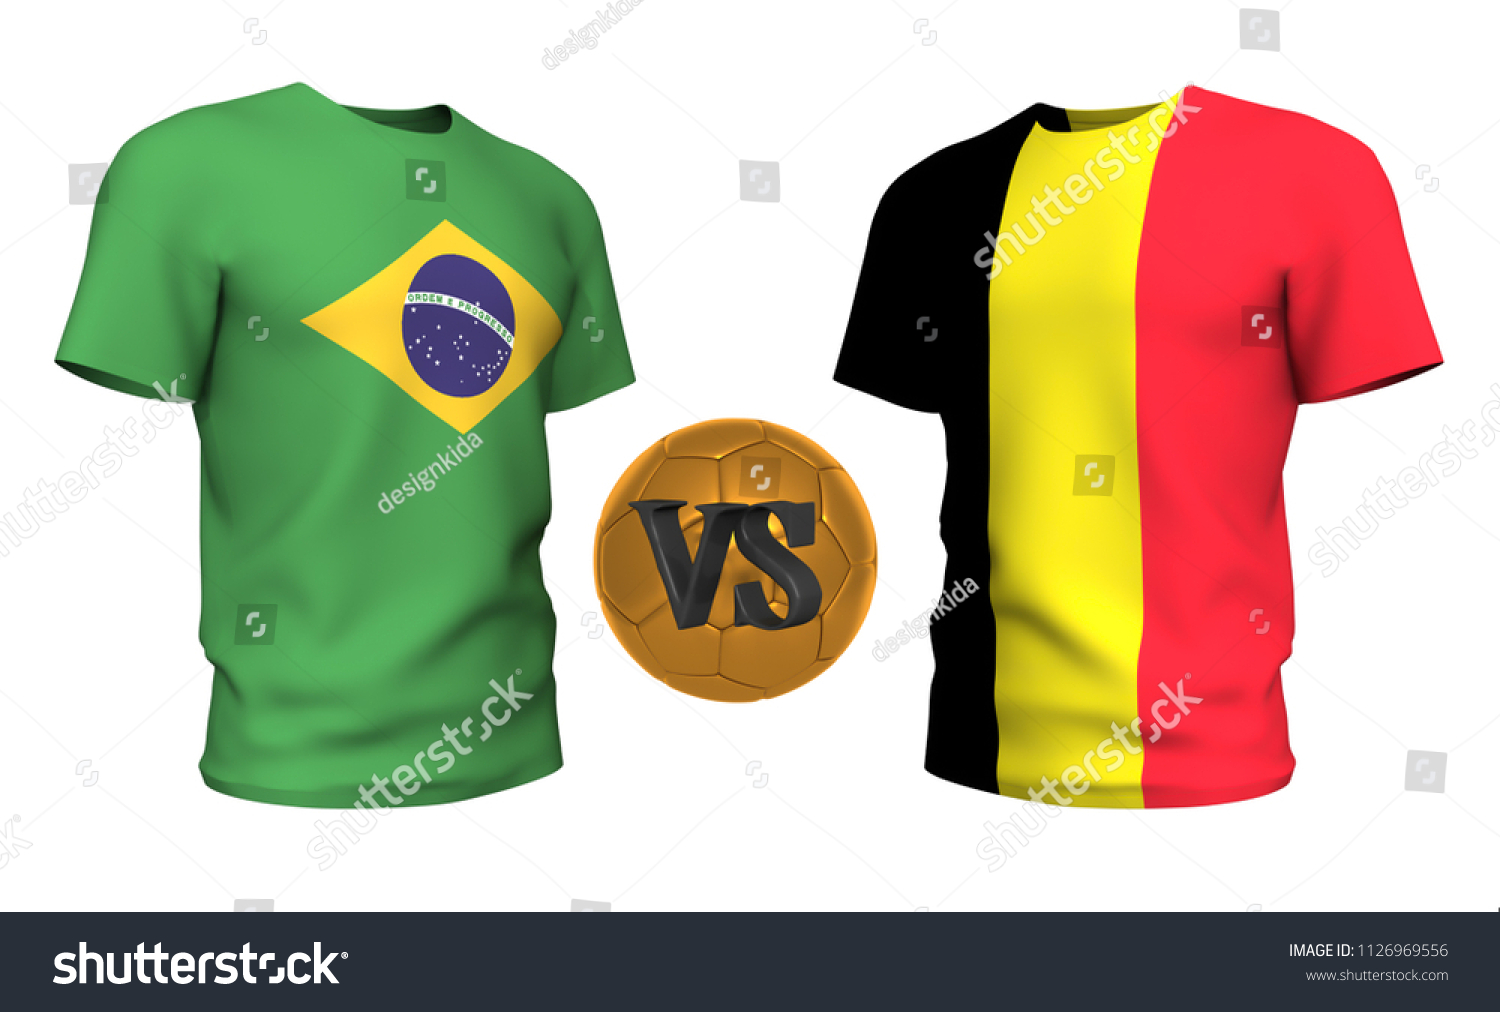 cb2d0fd74 brazil vs belgium . Soccer concept. isolated on White background with the flag  t-